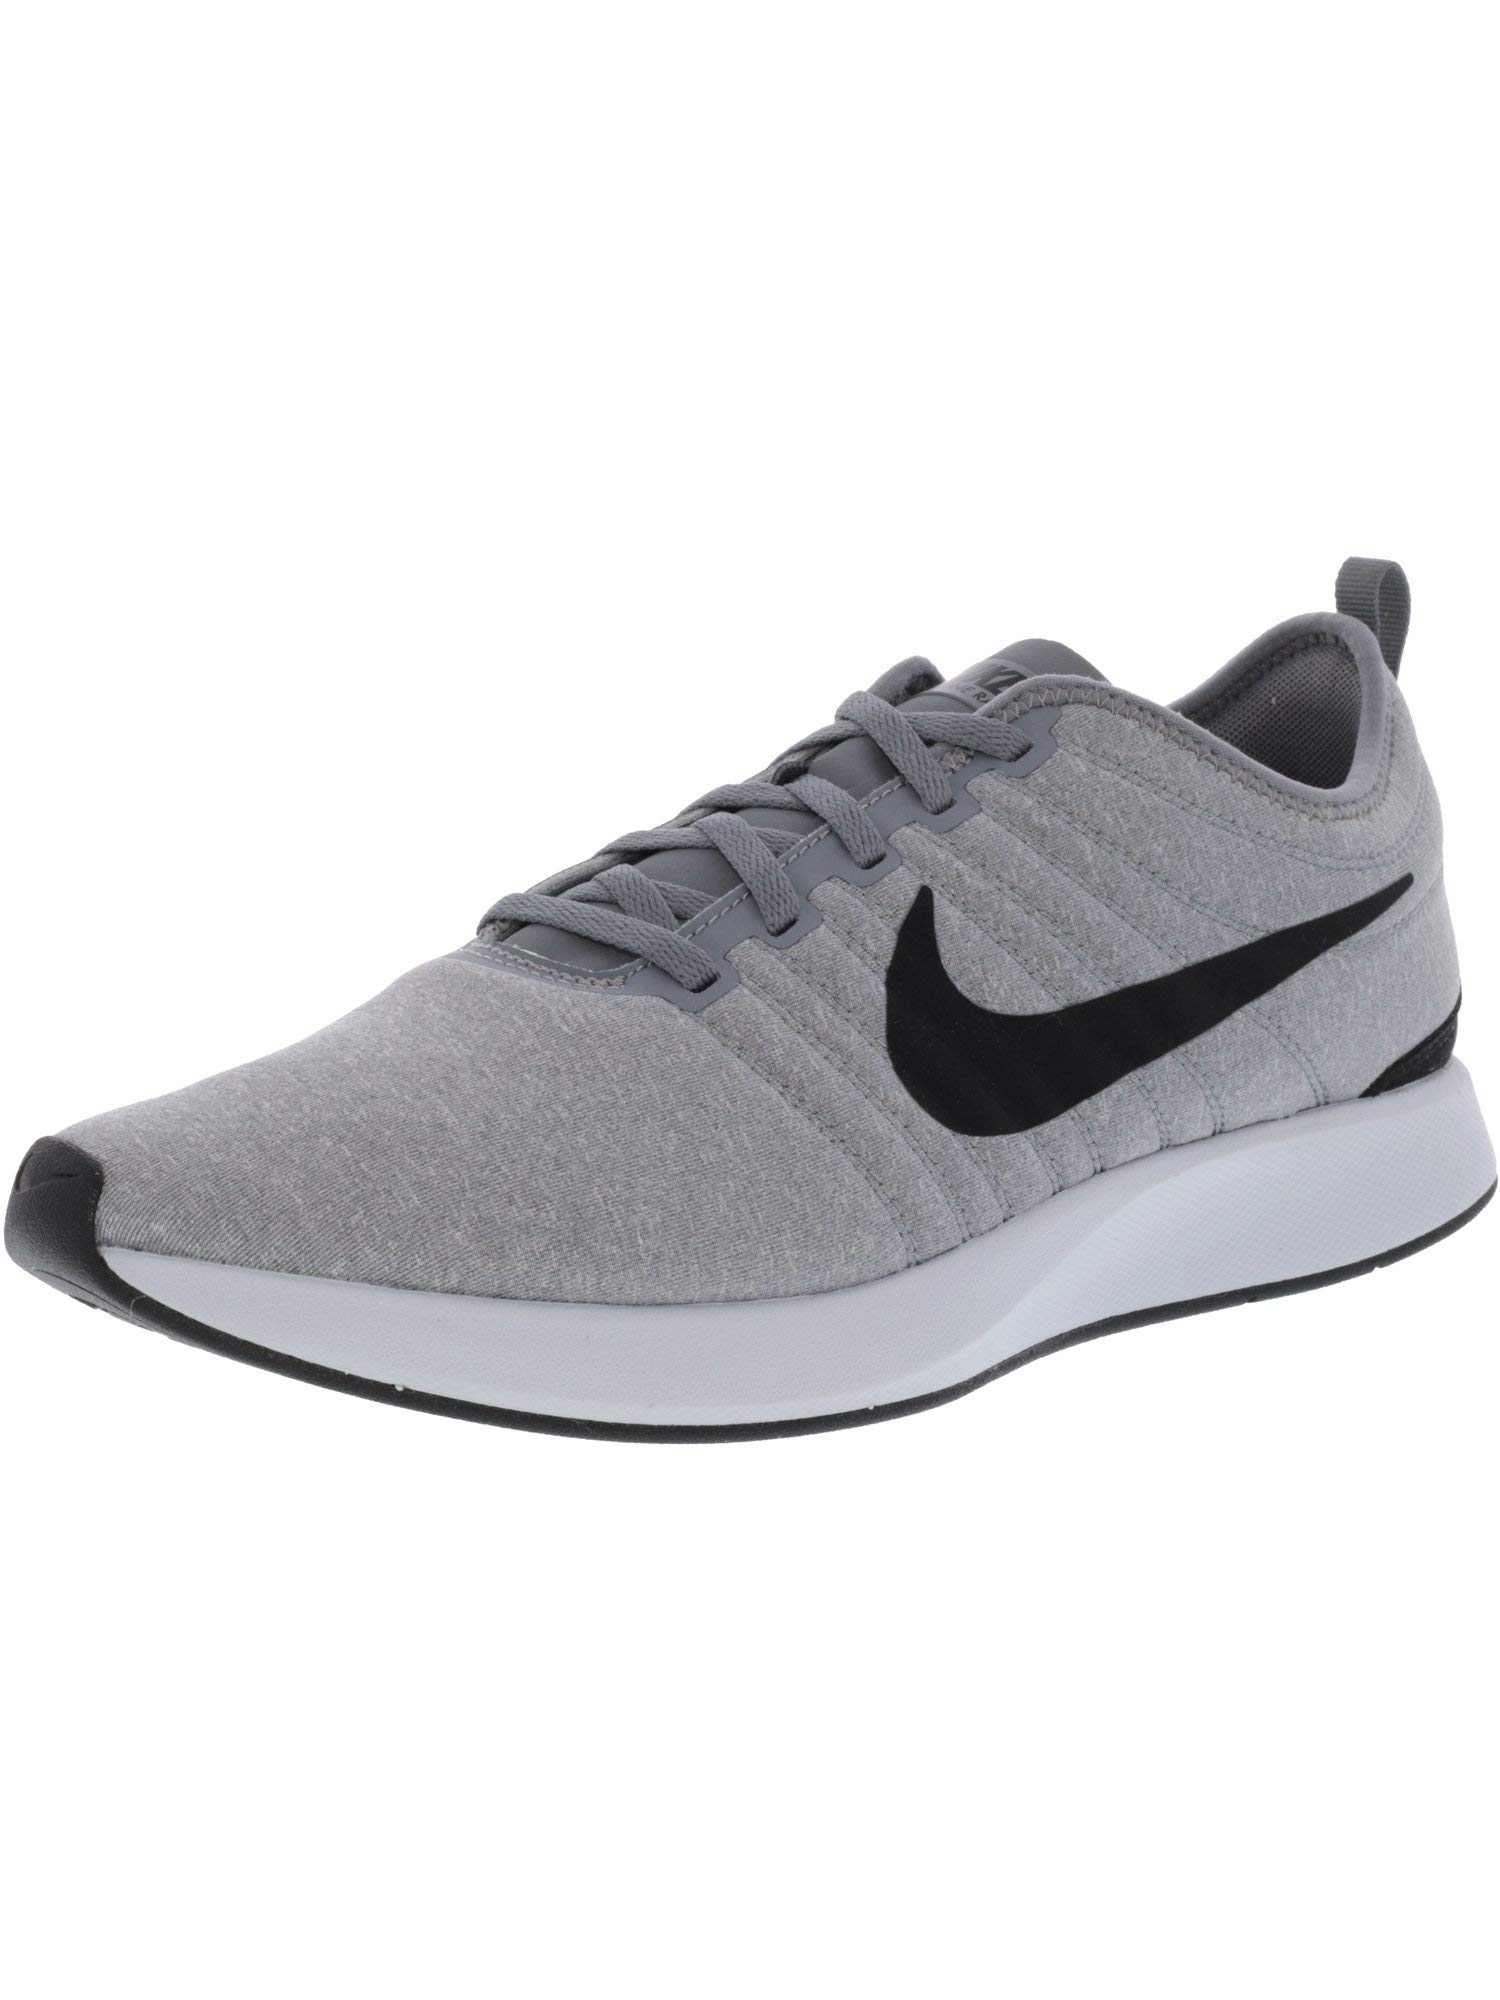 6cf353efcce4 Galleon - Nike Men s Dualtone Racer Cool Grey Black-Pure Platinum  Ankle-High Running Shoe - 11M